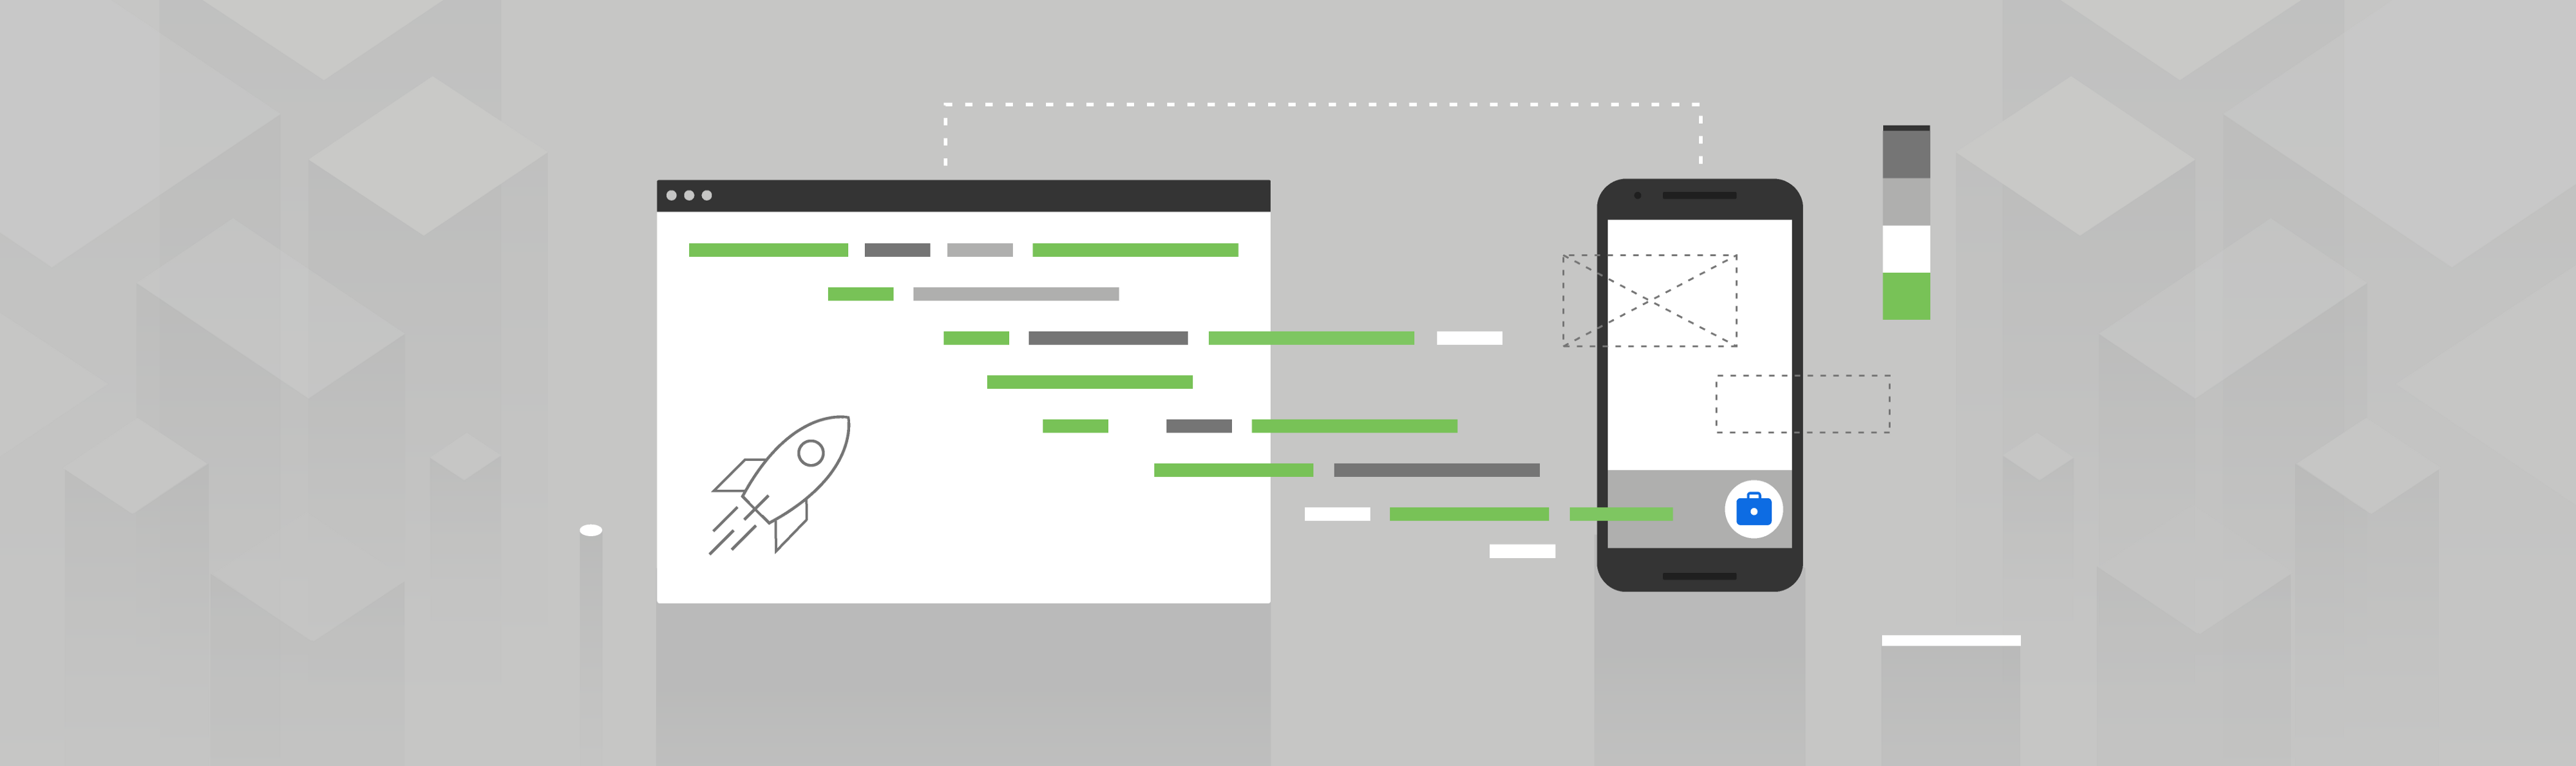 Publishing private apps just got easier - Android Developers